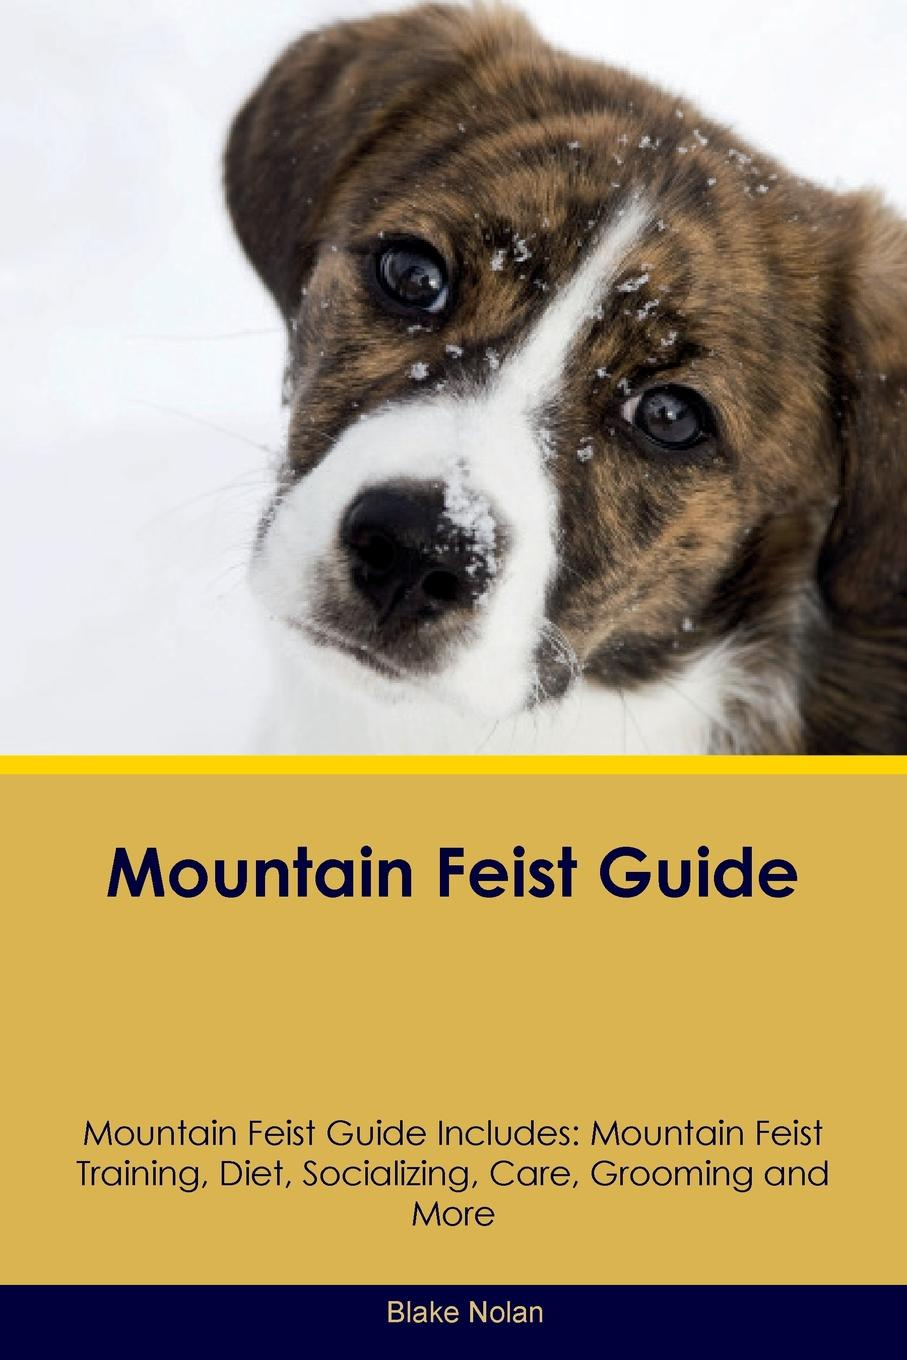 Blake Nolan Mountain Feist Guide Mountain Feist Guide Includes. Mountain Feist Training, Diet, Socializing, Care, Grooming, Breeding and More training central mountain feist tricks training mountain feist tricks